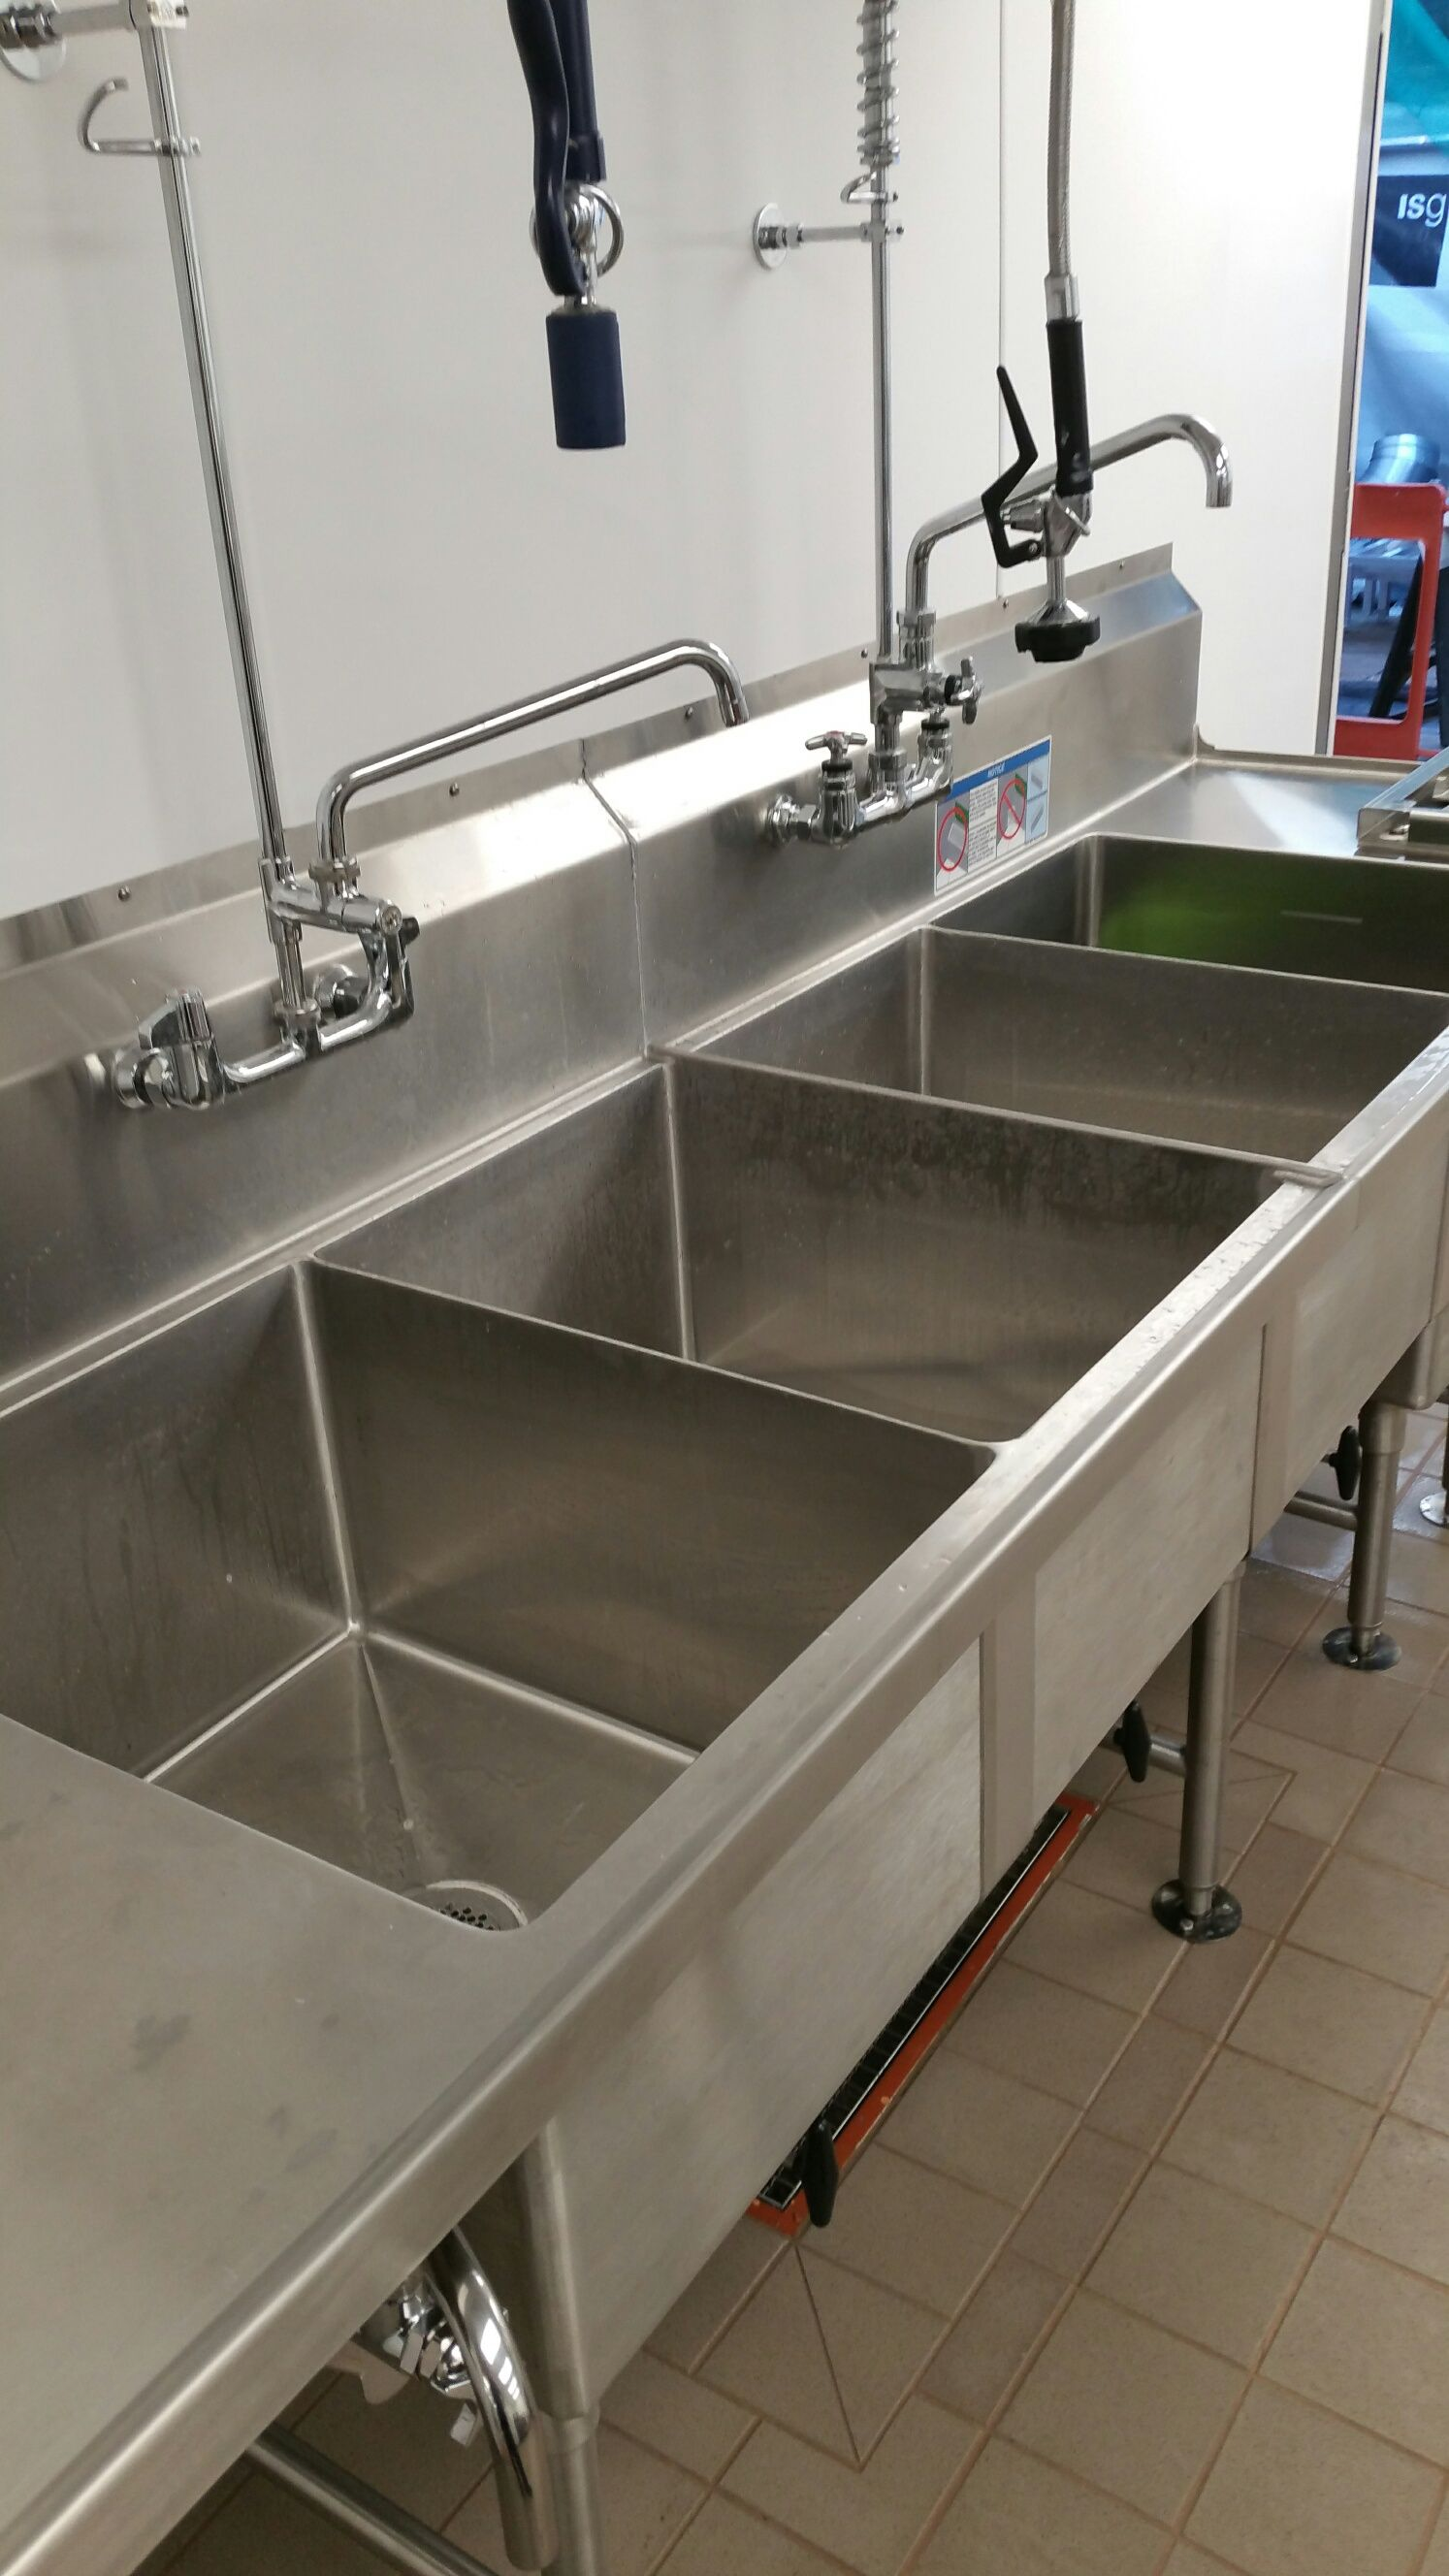 After the clean - Clean kitchen -http://www.fluidhygiene.com/specialist-cleaning/after-builders-cleaning/